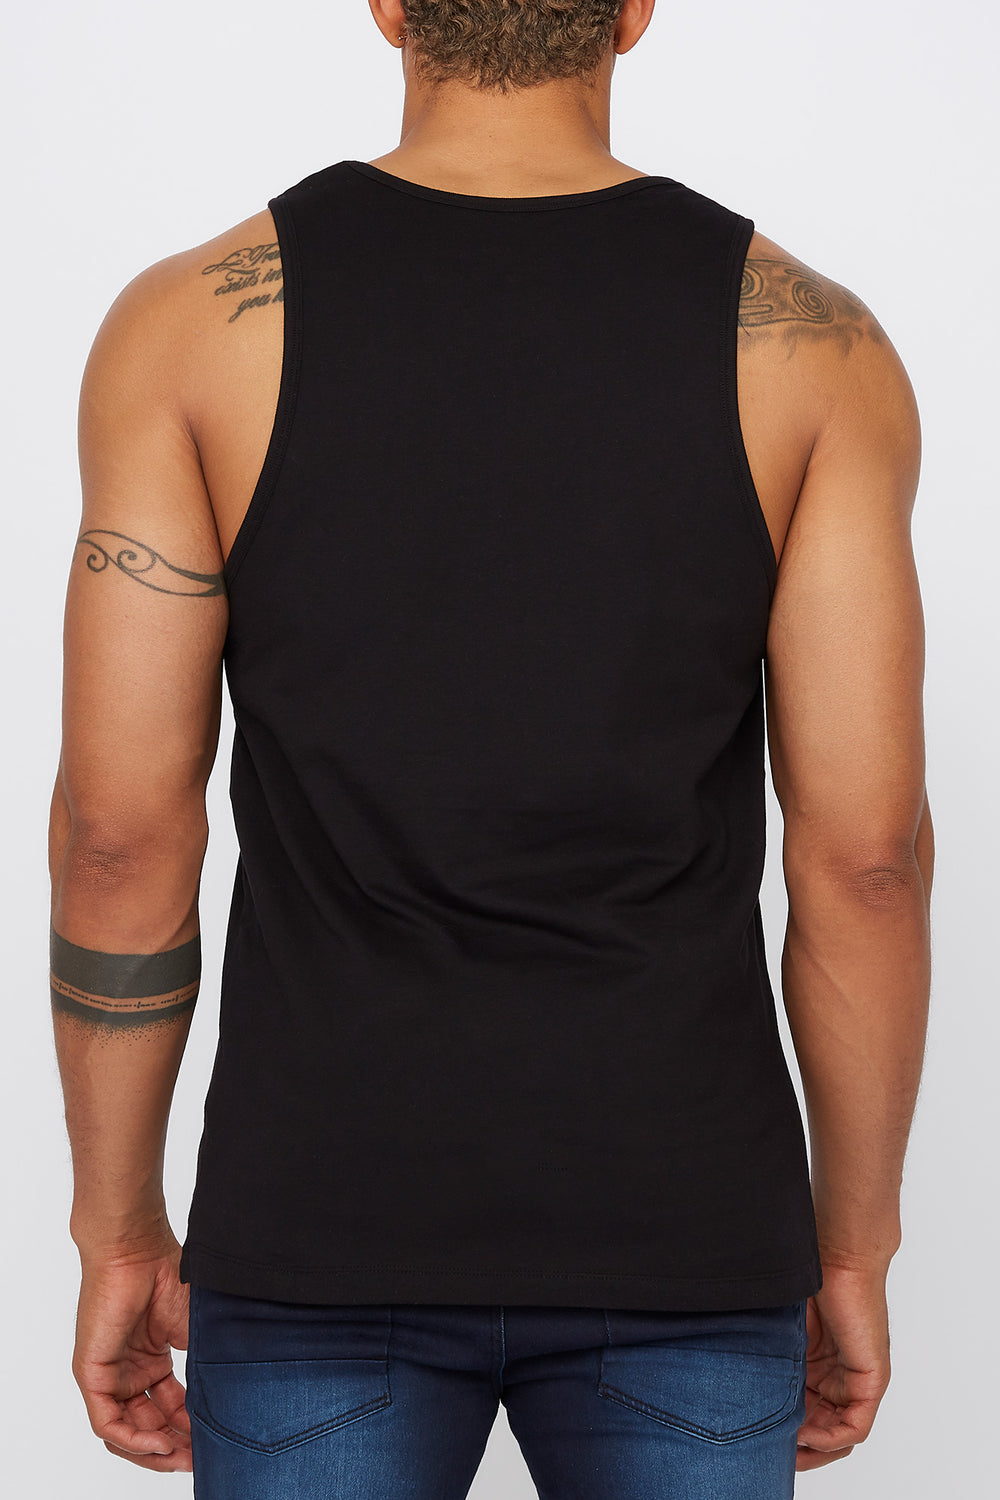 Camisole Flamants Roses Zoo York Homme Noir